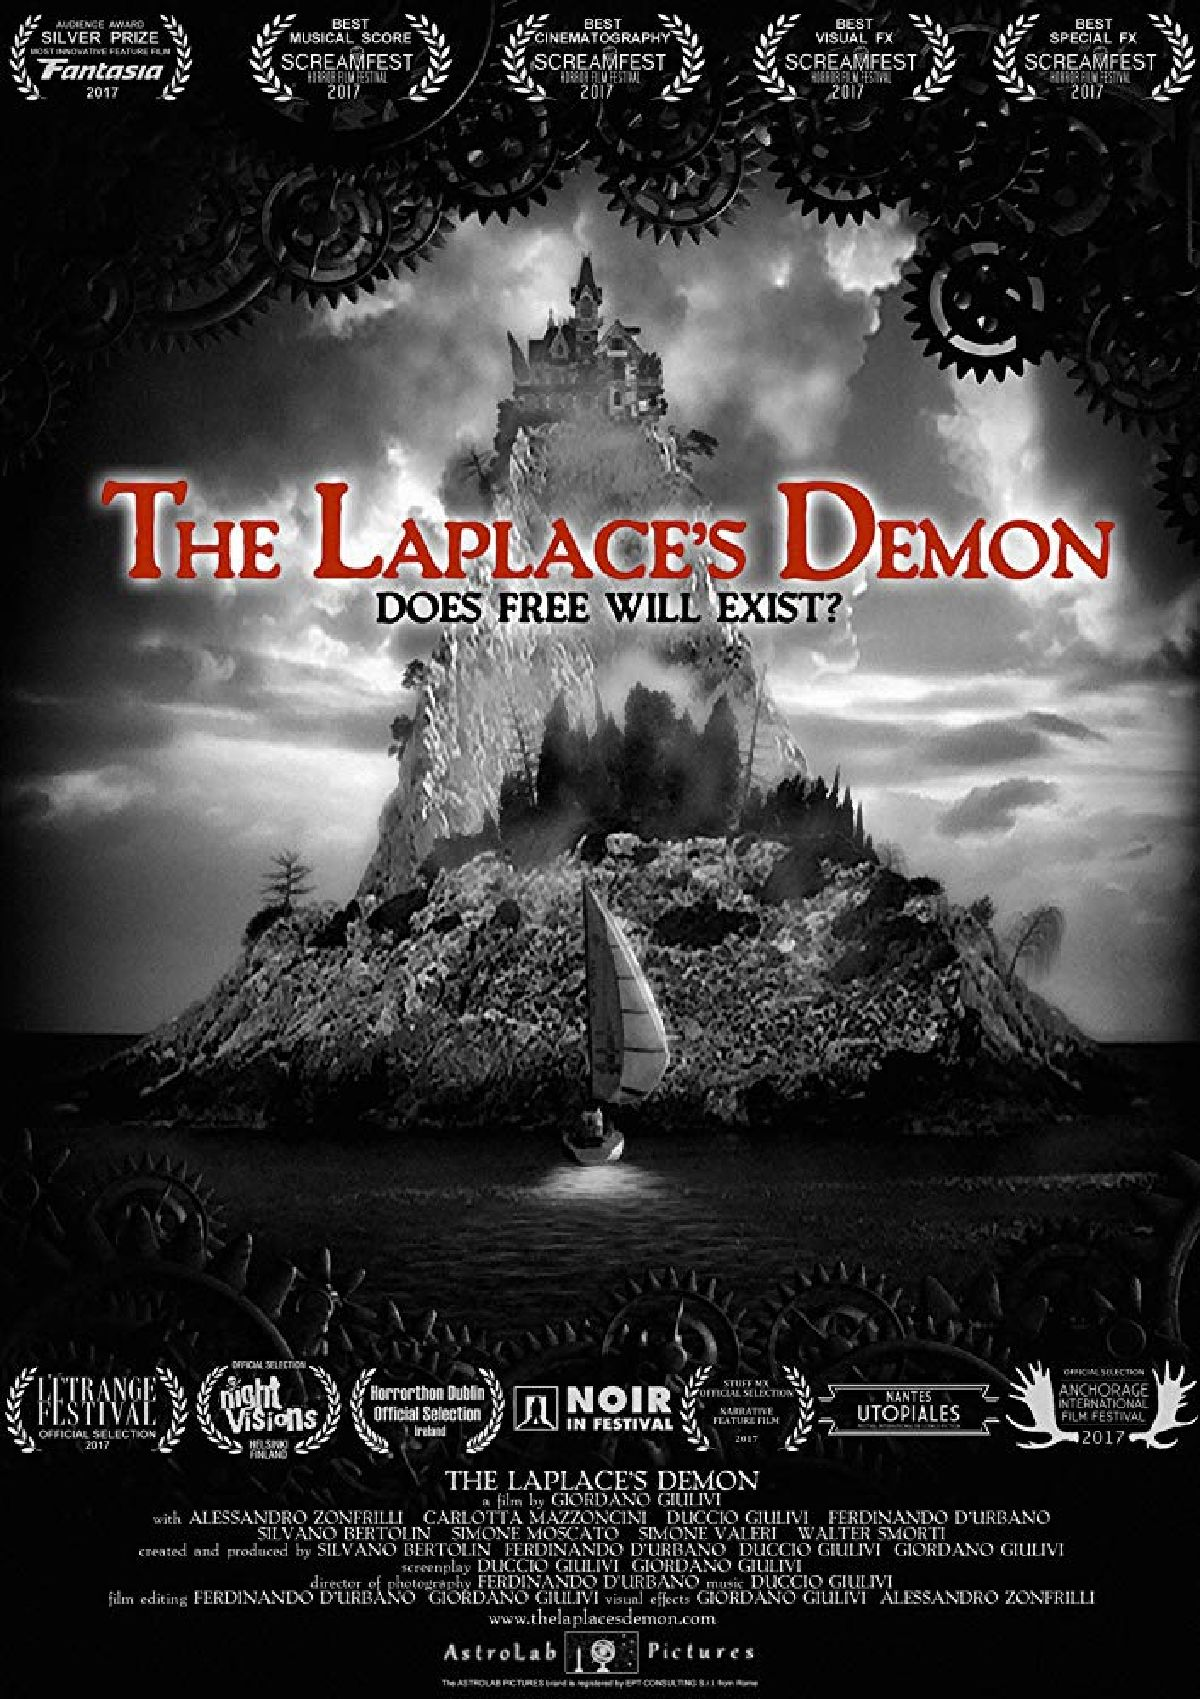 'The Laplace's Demon' movie poster